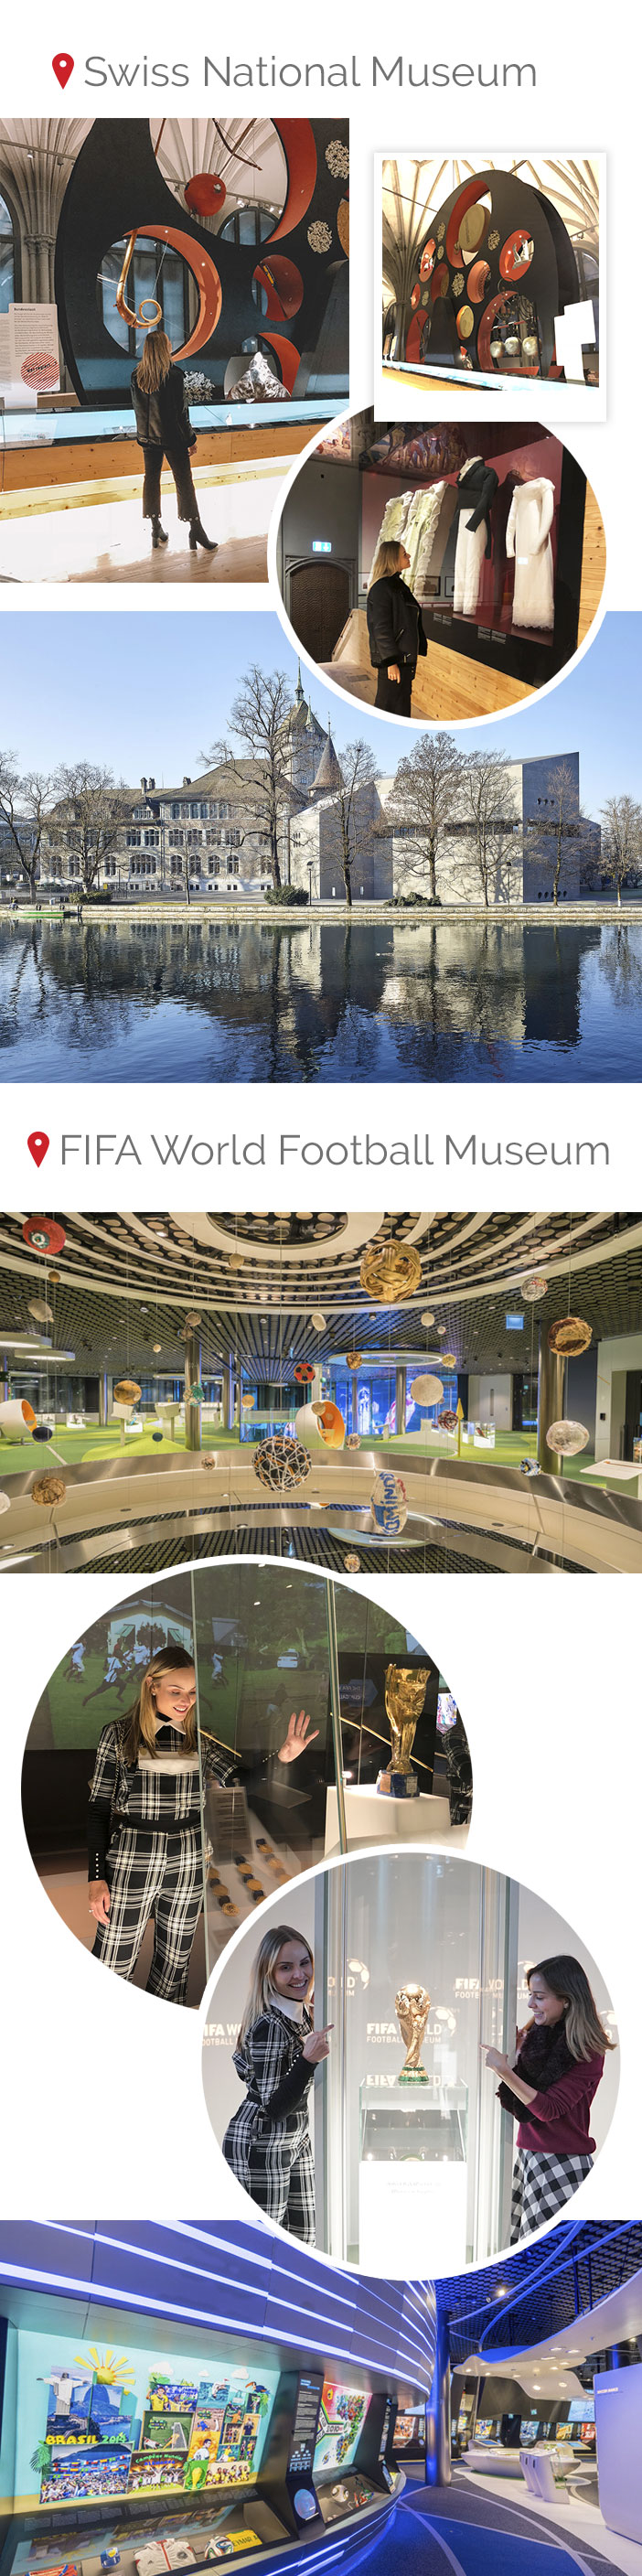 Diário de bordo - Zurique - Passeios Swiss National Museum e FIFA World Football Museum